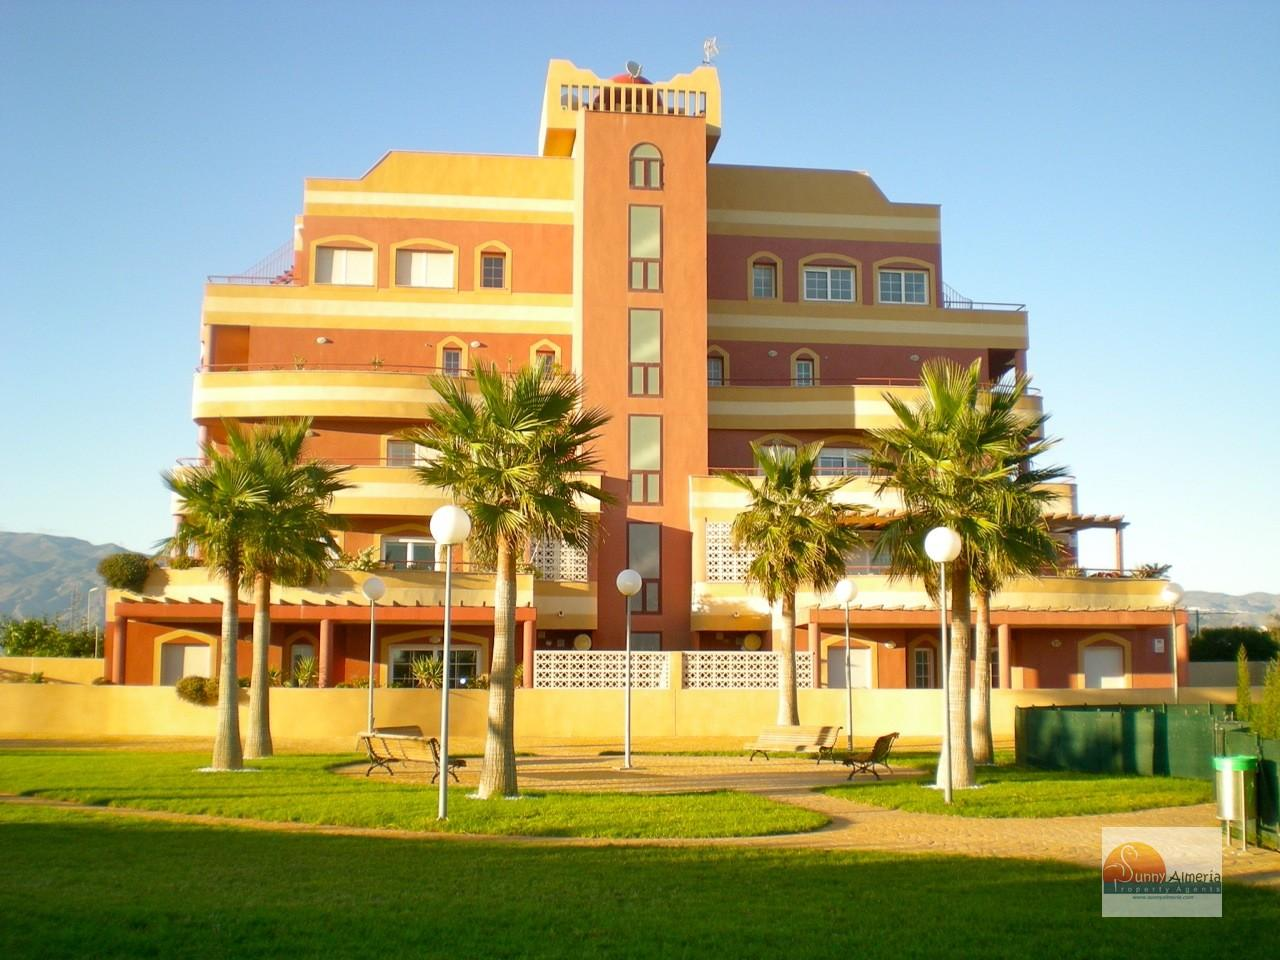 Luxury Flat for sale in Playa Serena Sur (Roquetas de Mar), 150.000 €